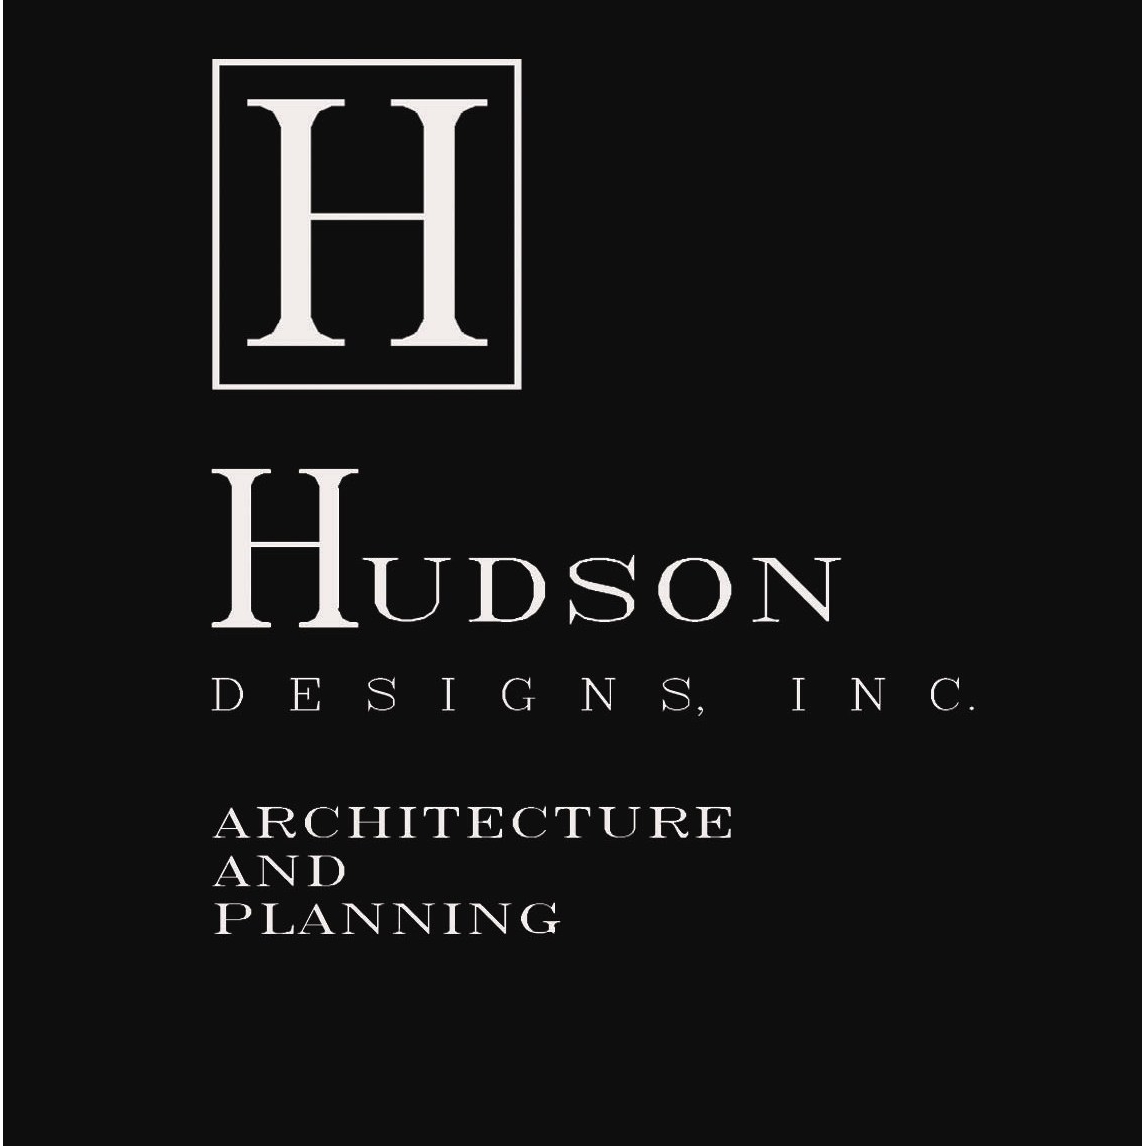 Hudson Designs, Inc. image 5